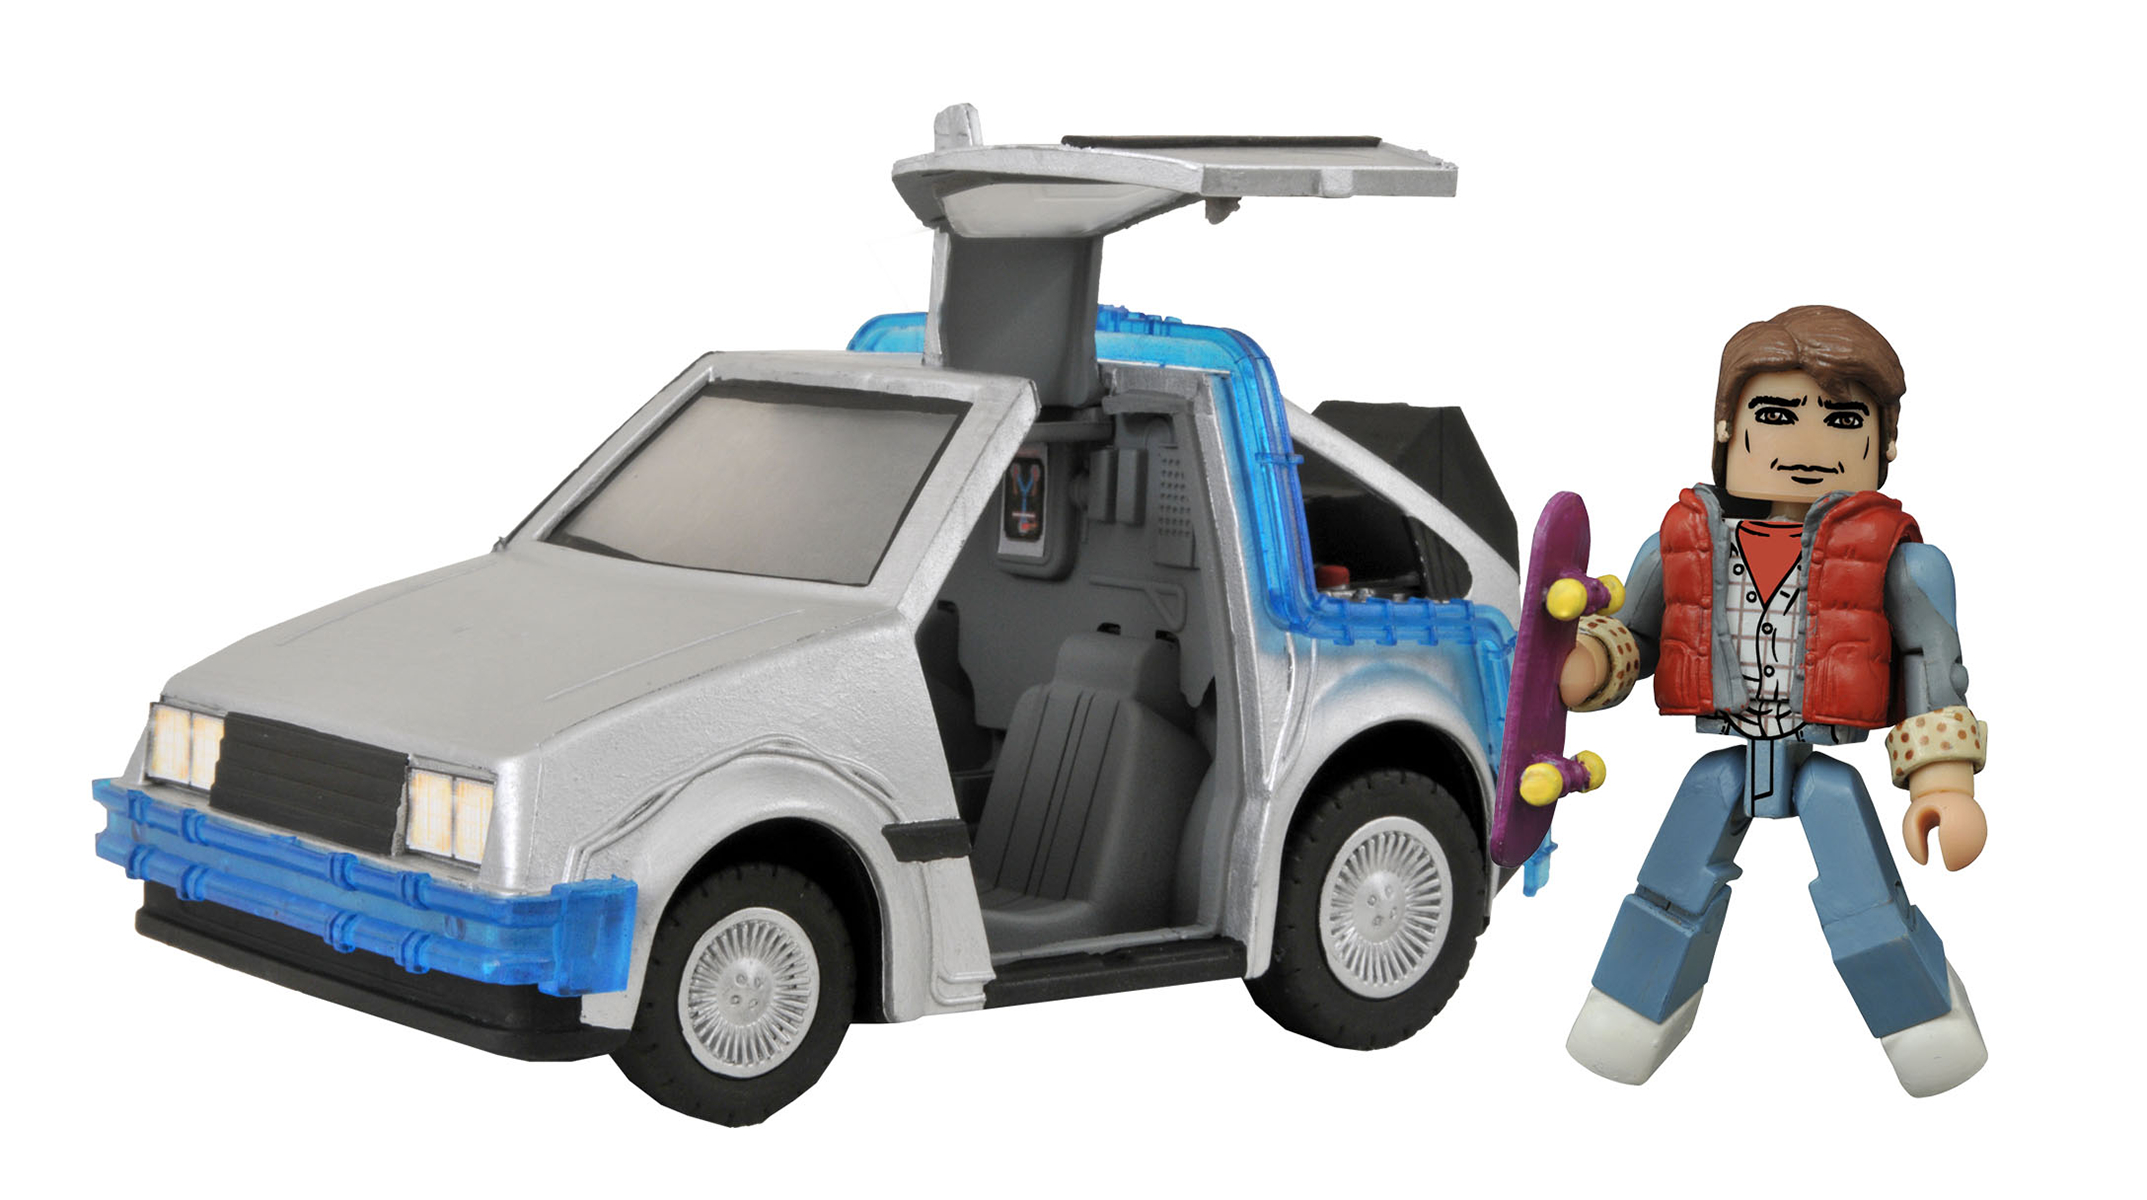 BTTF MINIMATES TIME MACHINE #1